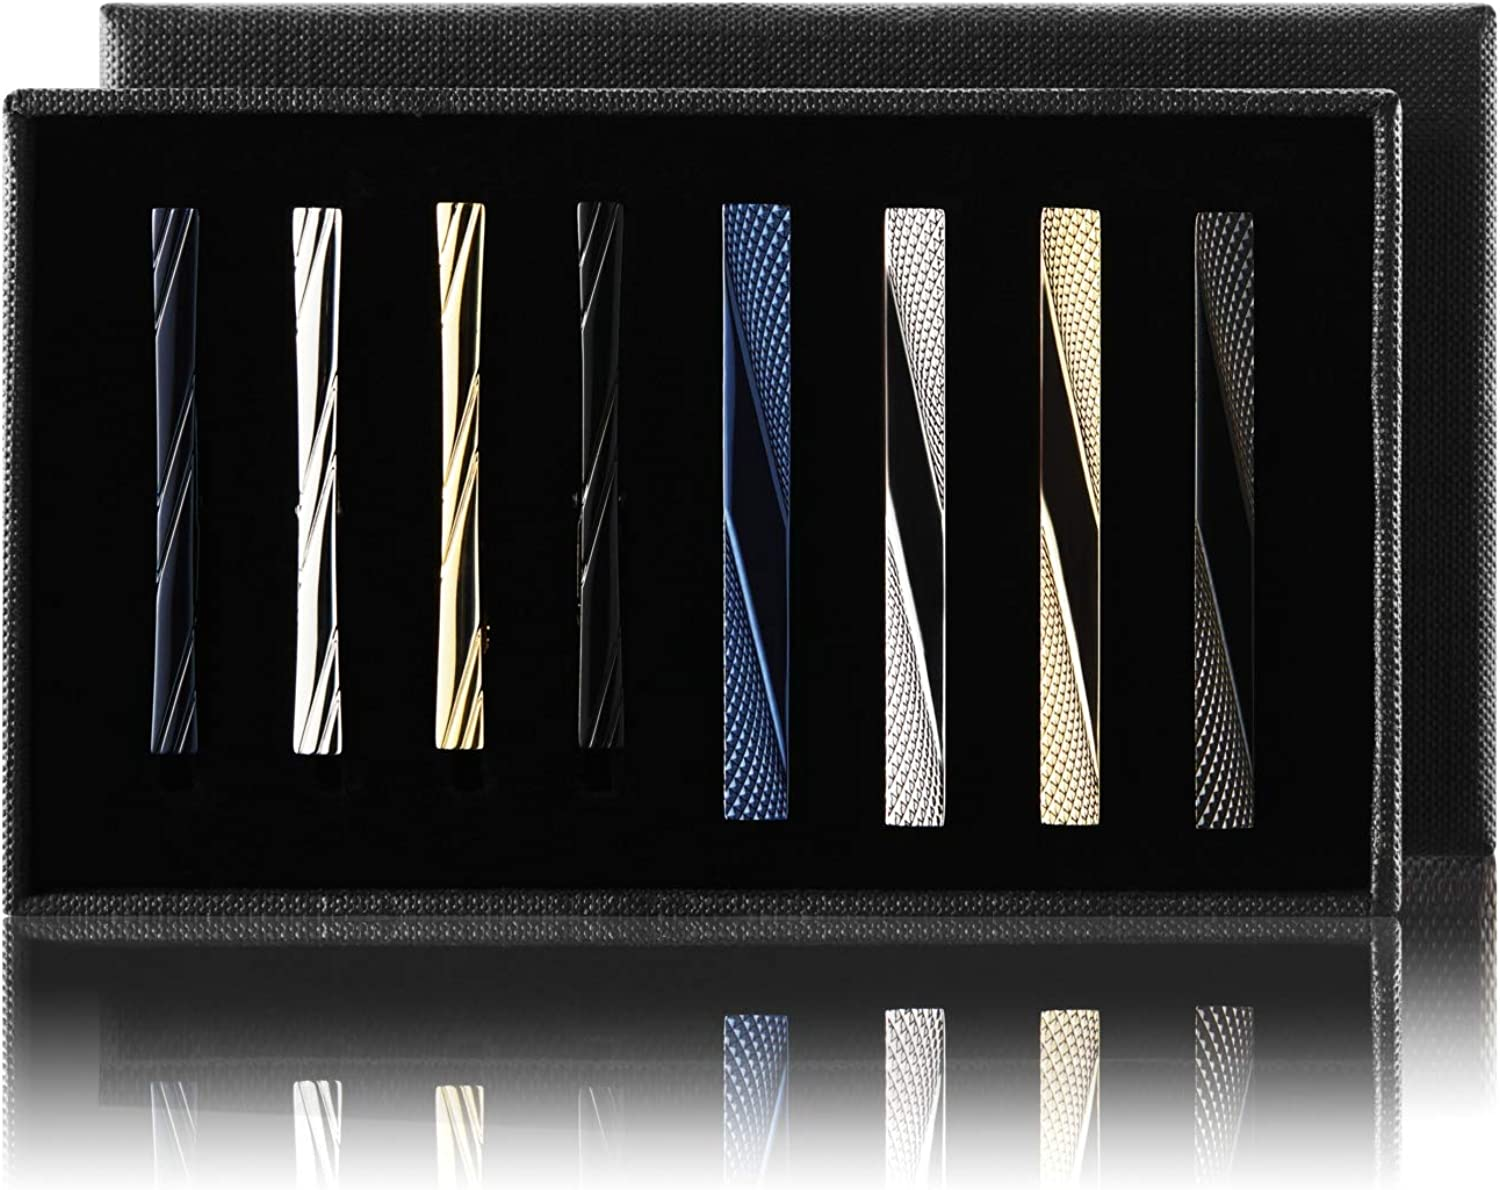 MOZETO Tie Clip Set for Men, 2 Sizes Tie Bars Fit Regular Tie and Narrow Tie, 8pcs Luxury Packaging for Men's Gift